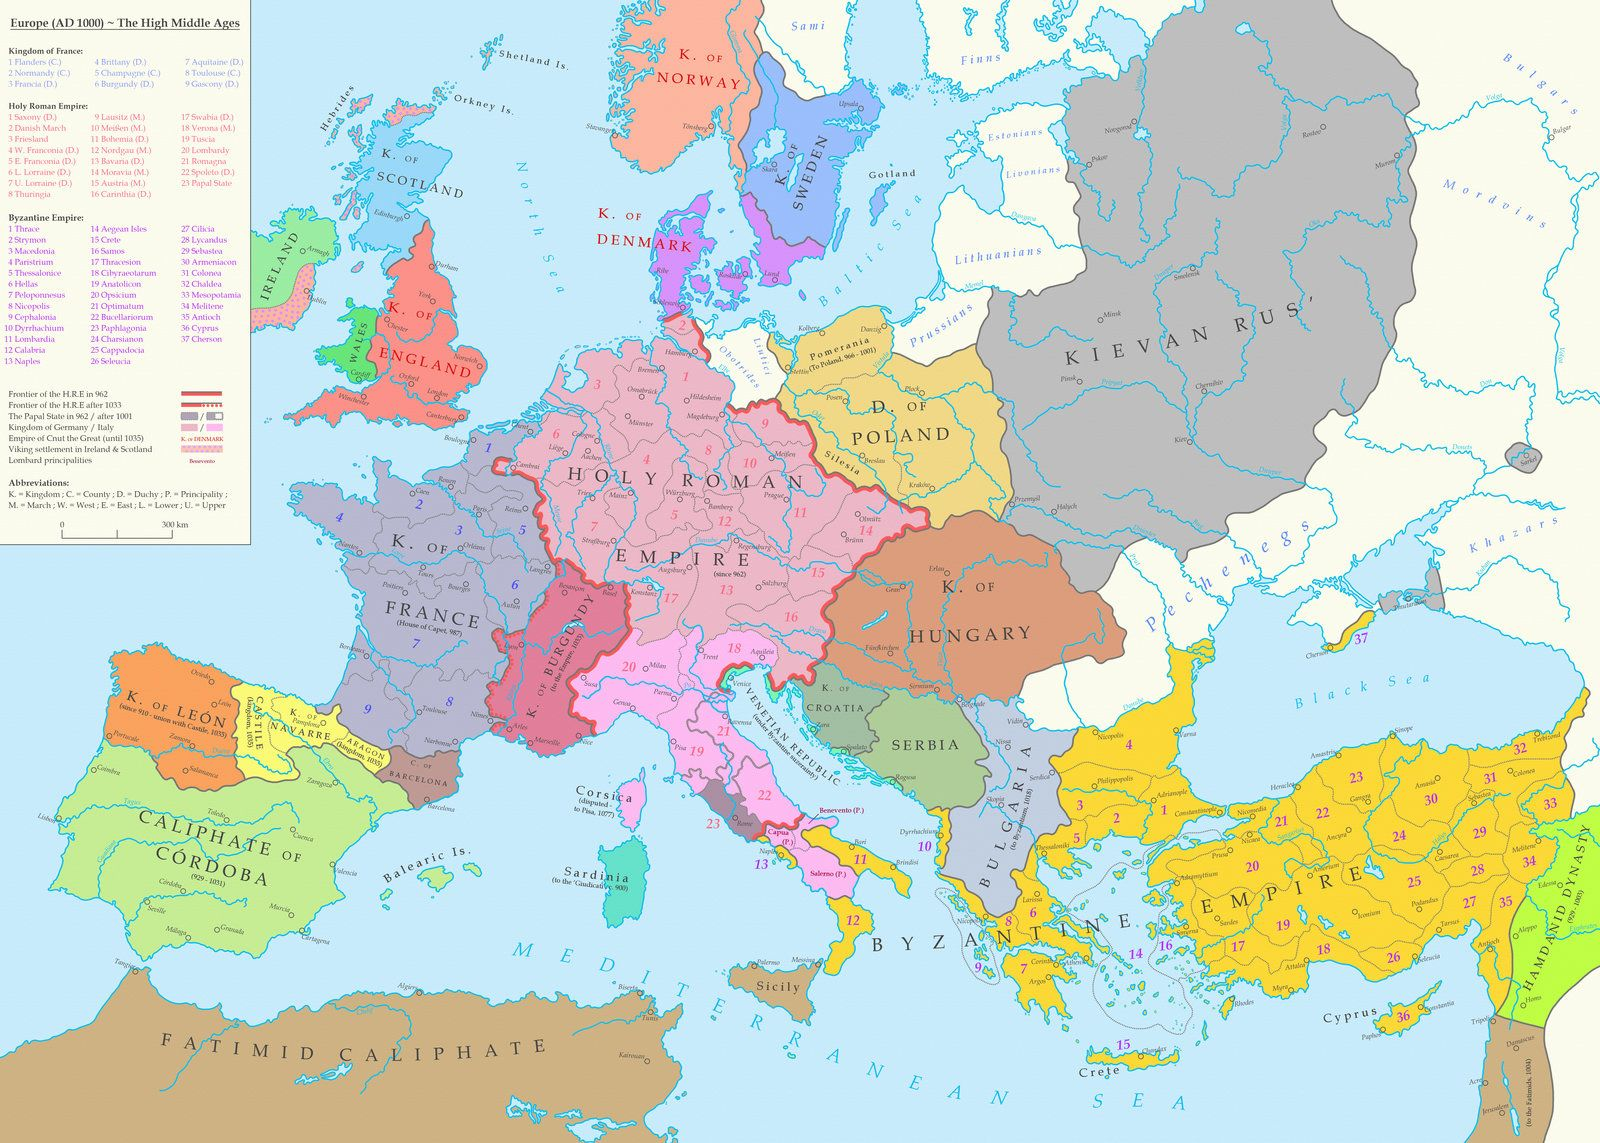 map of europe during the high middle ages 1000 ad 1600 1143